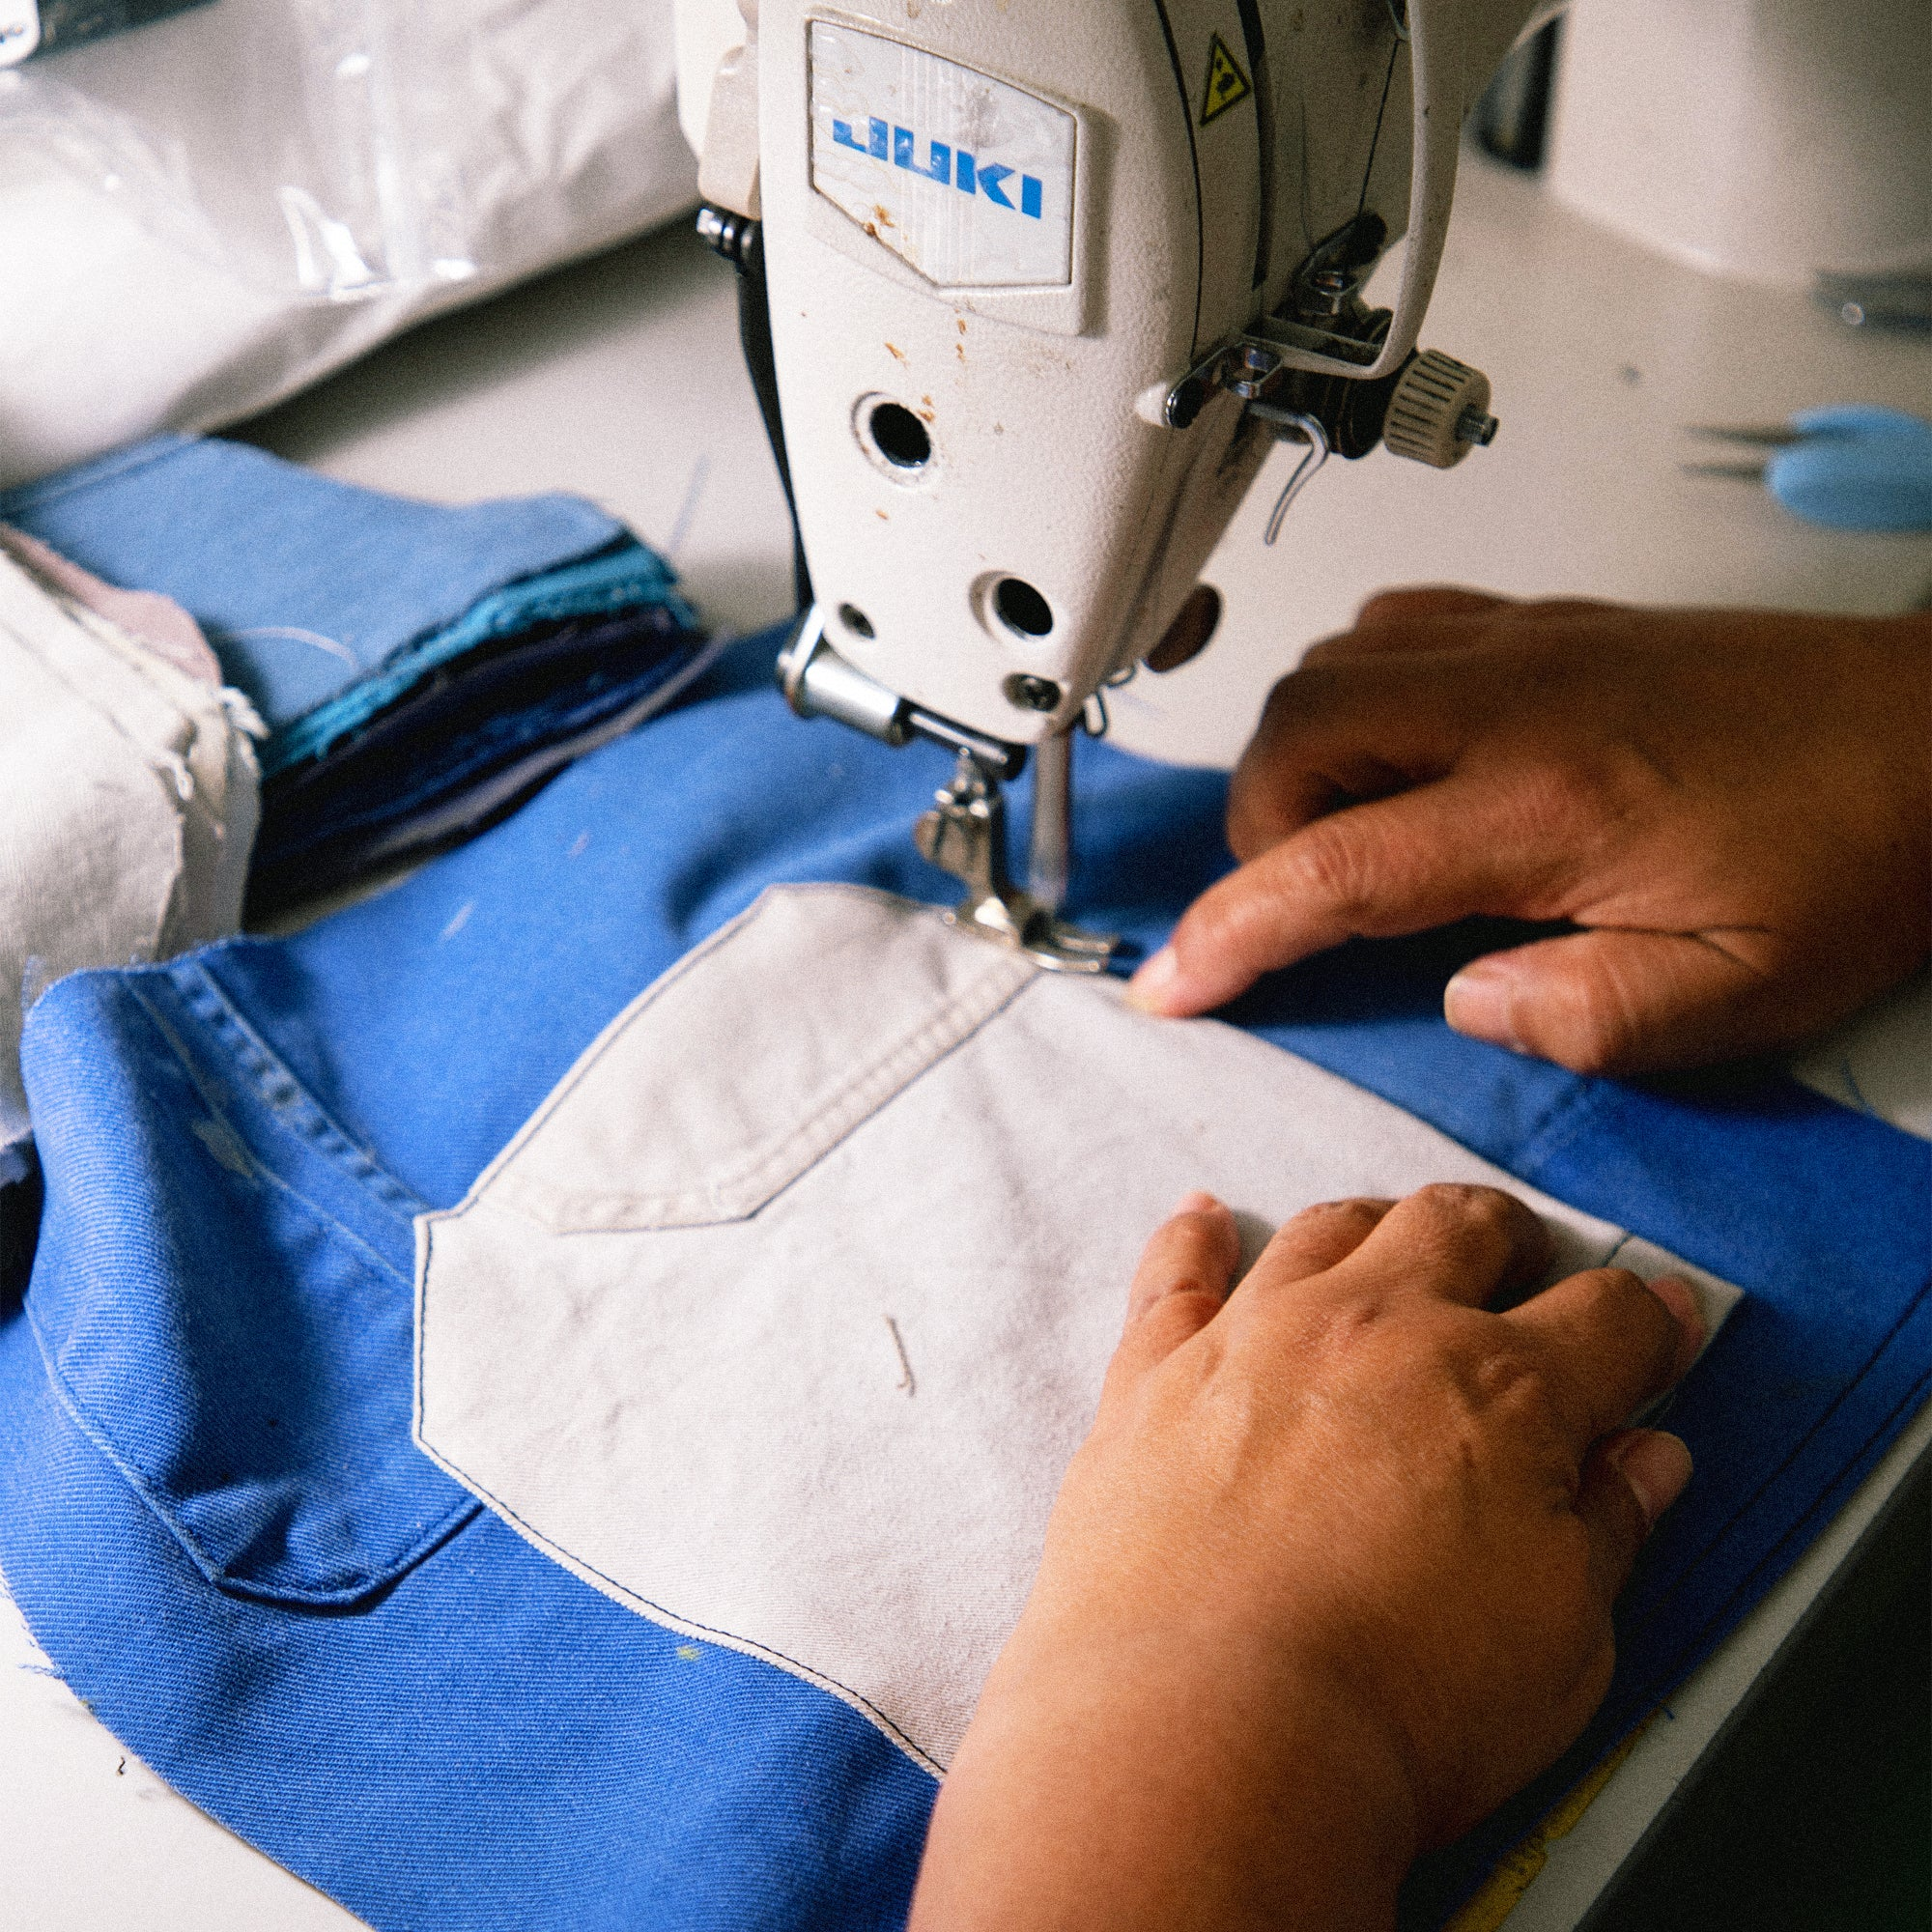 Image of person sewing pieces of Recraft garment together